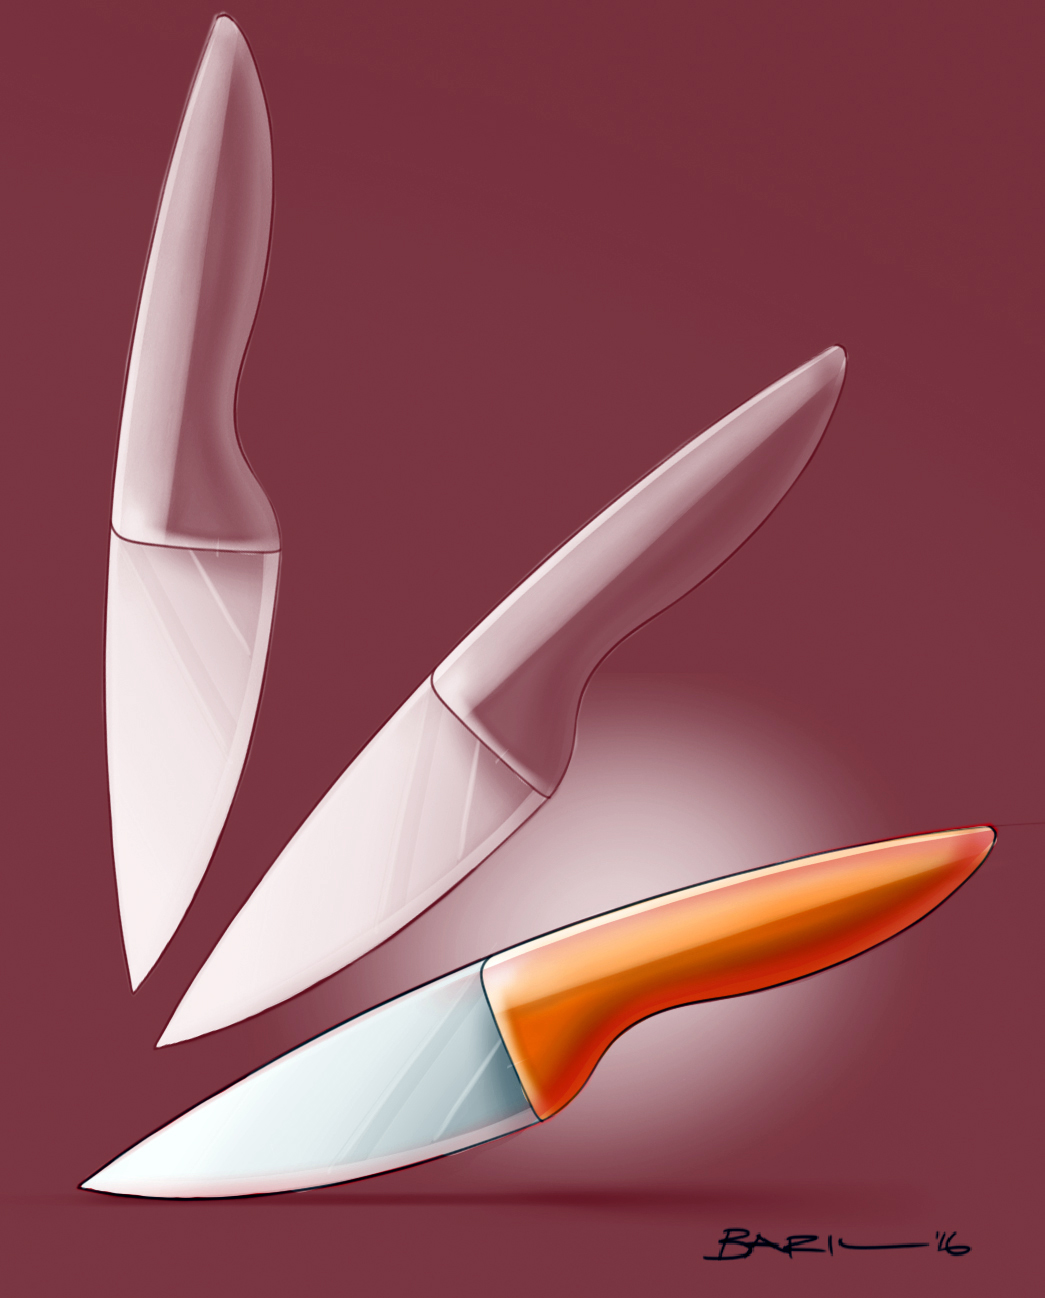 Contemporary Knife